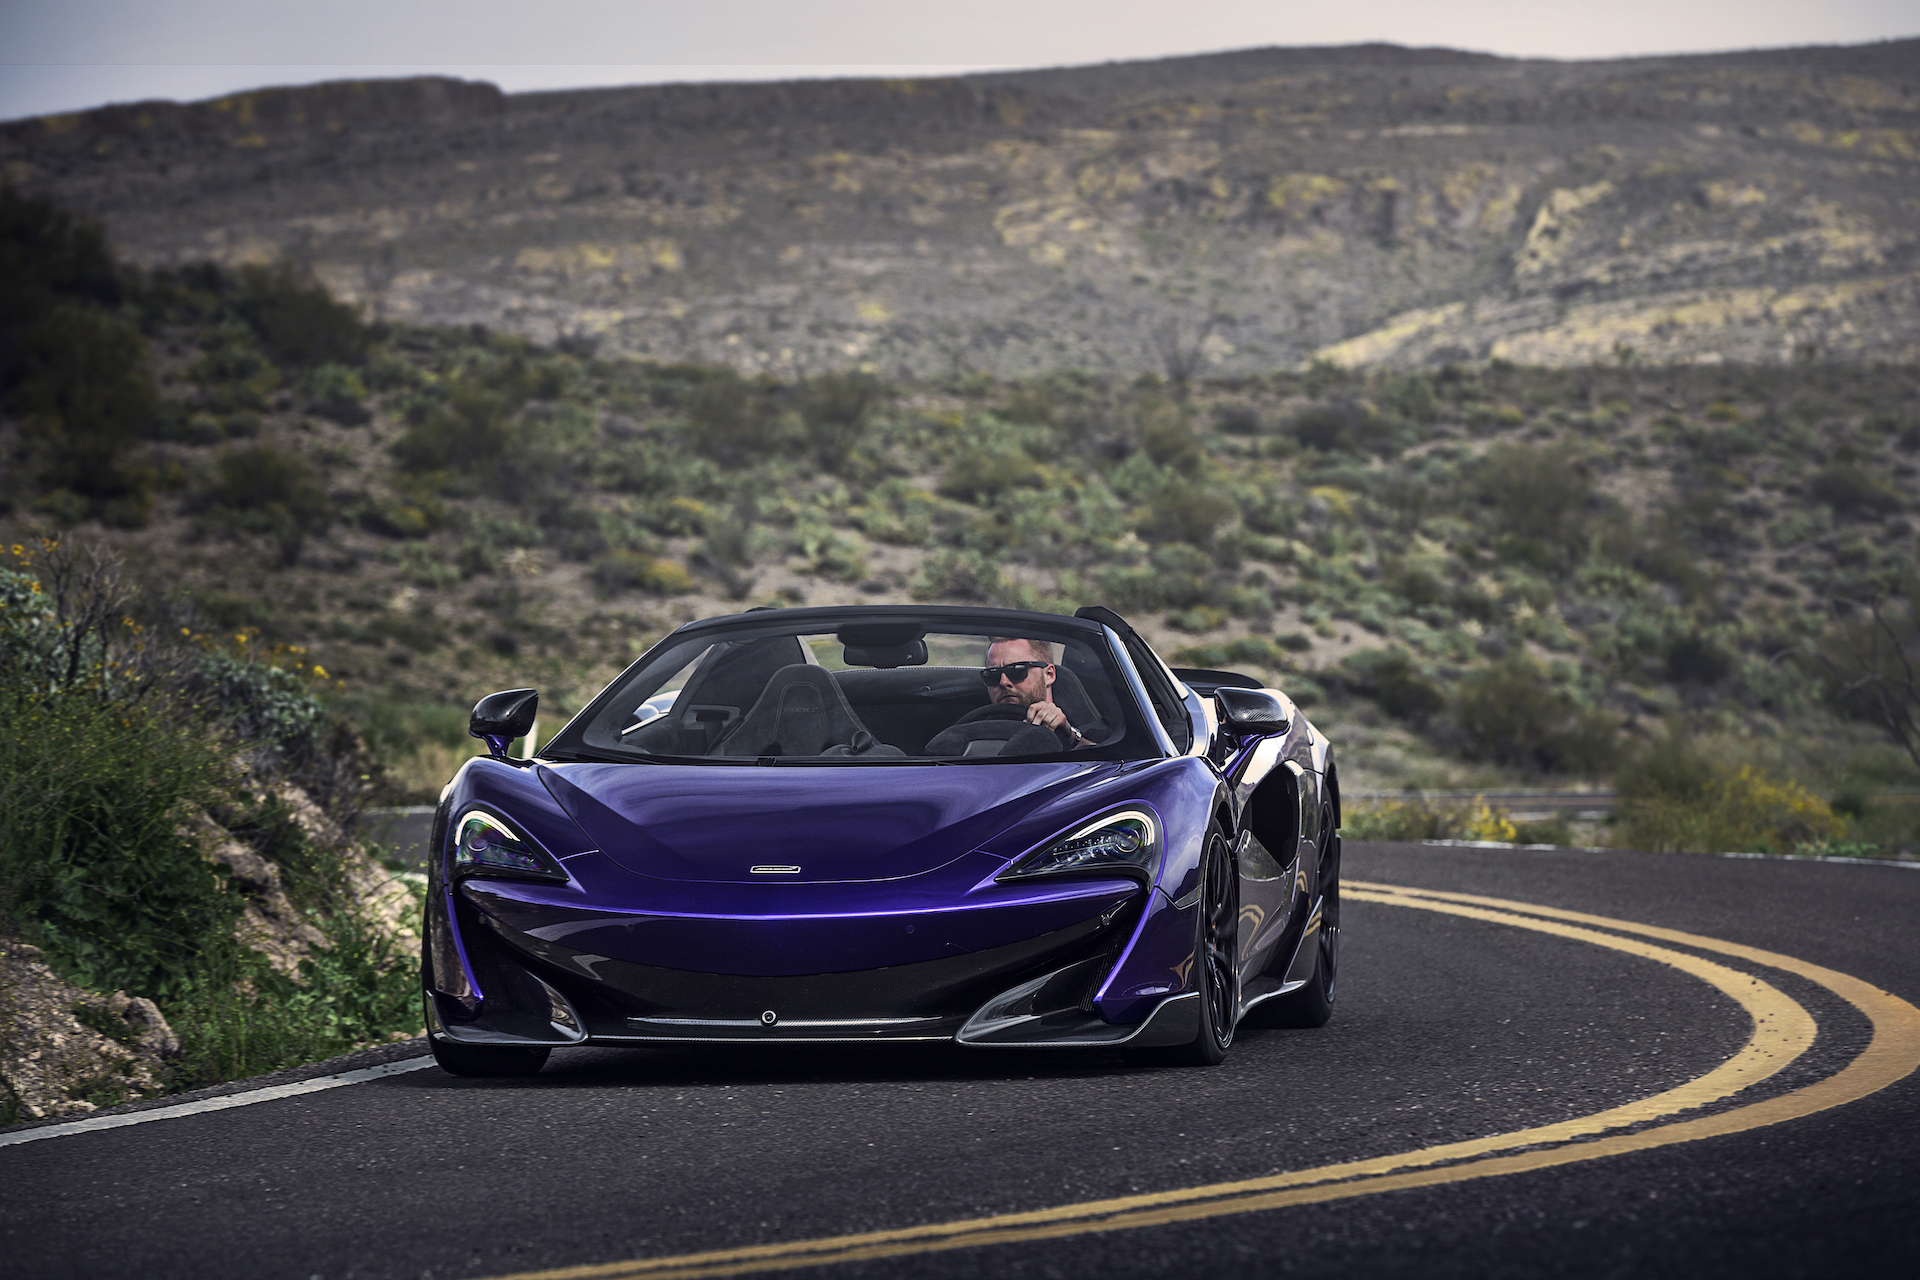 2020 McLaren 600LT Spider (Color: Lantana Purple) Front Wallpaper (13)